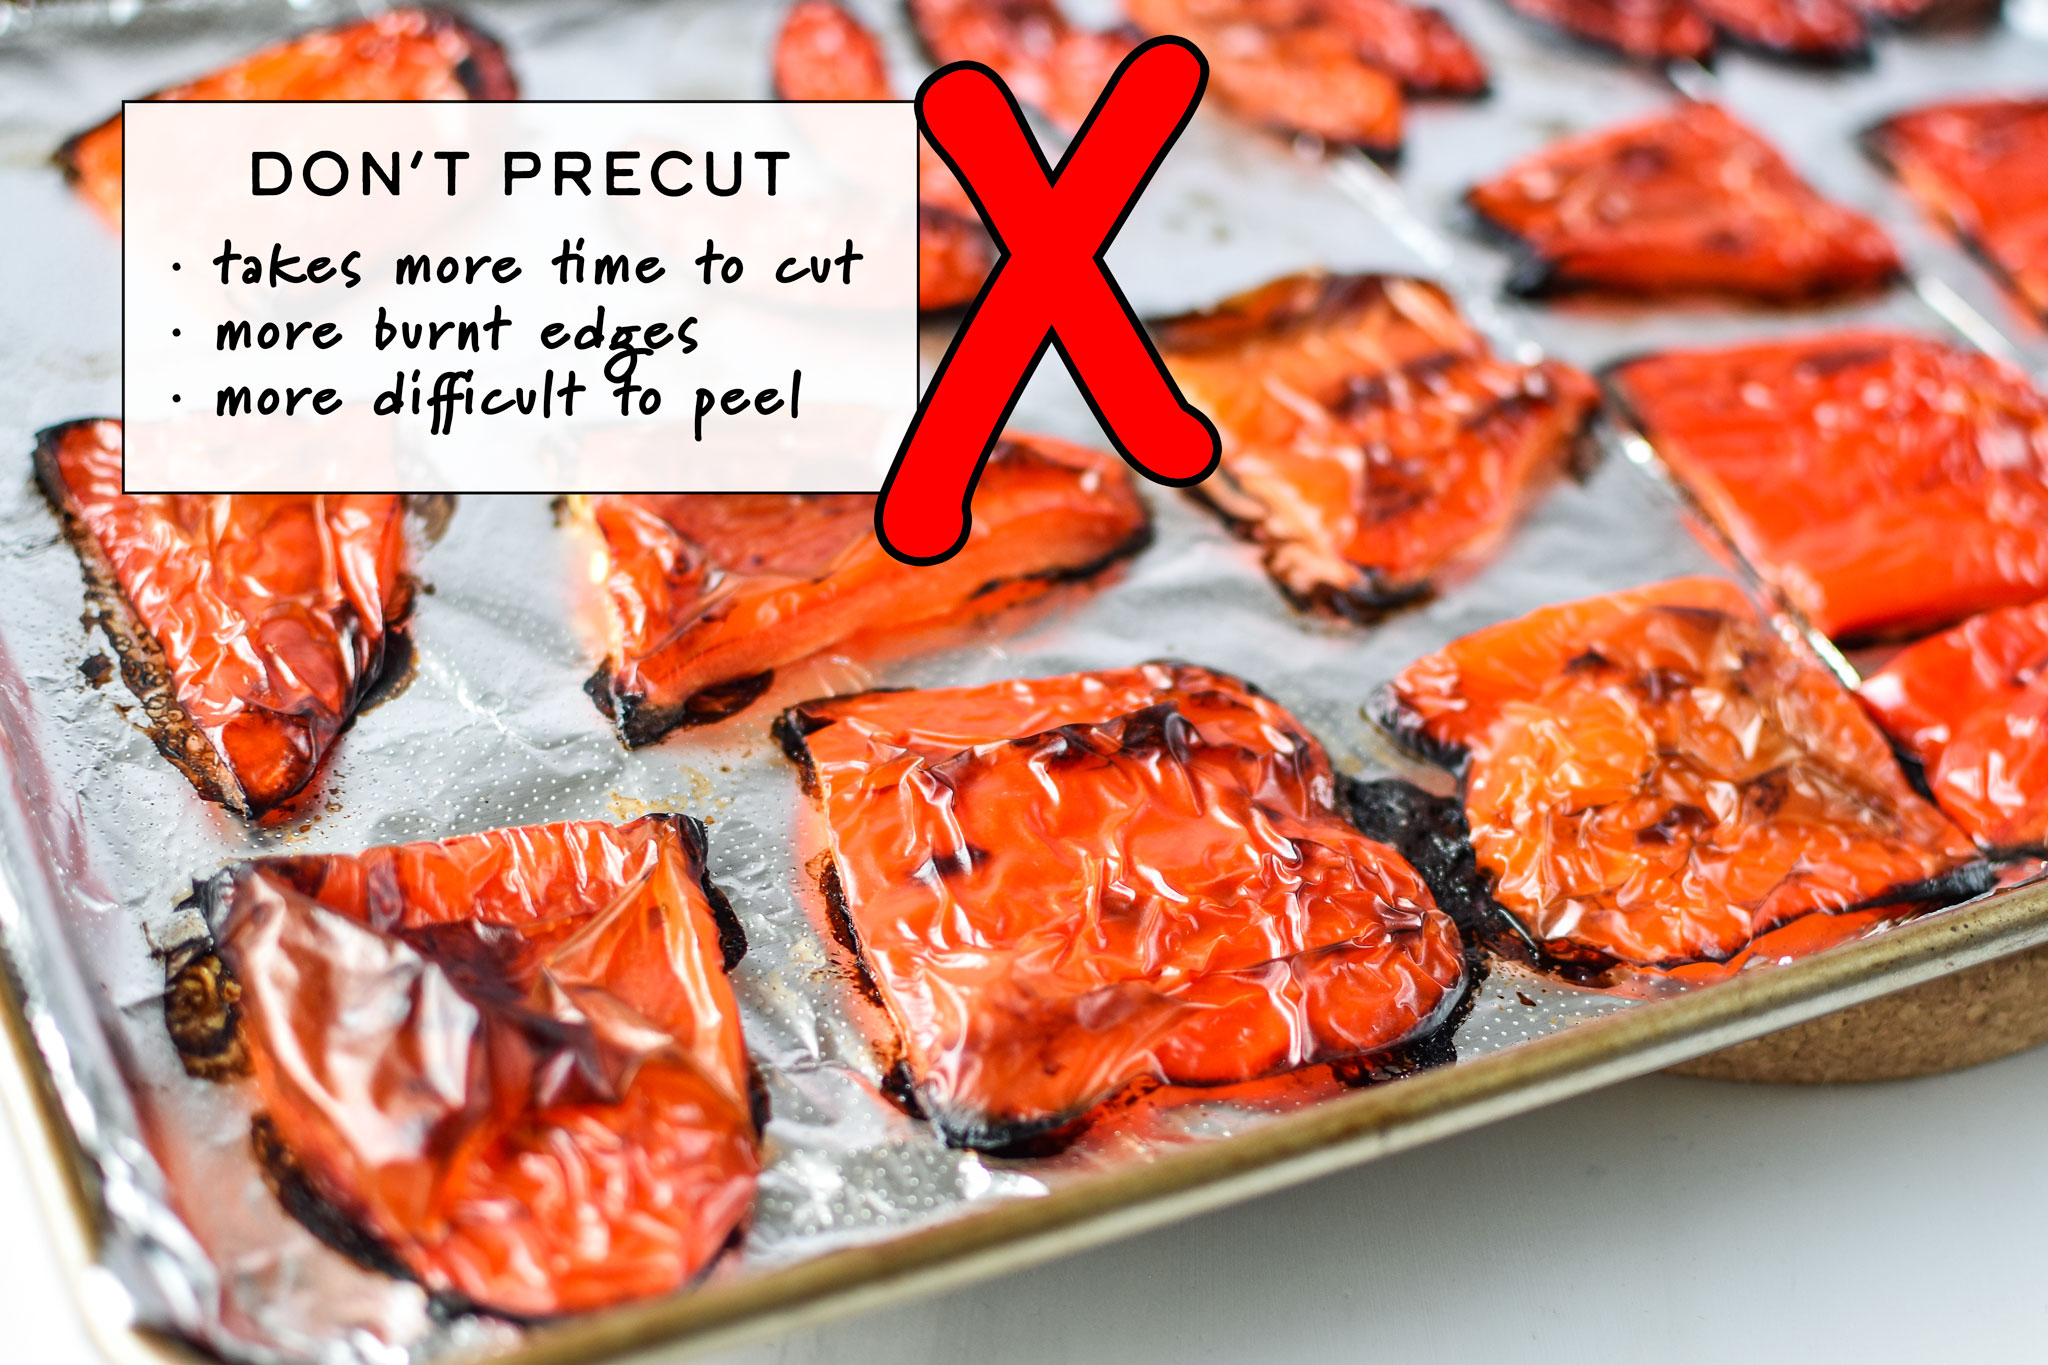 Don't precut the red bell peppers before roasting